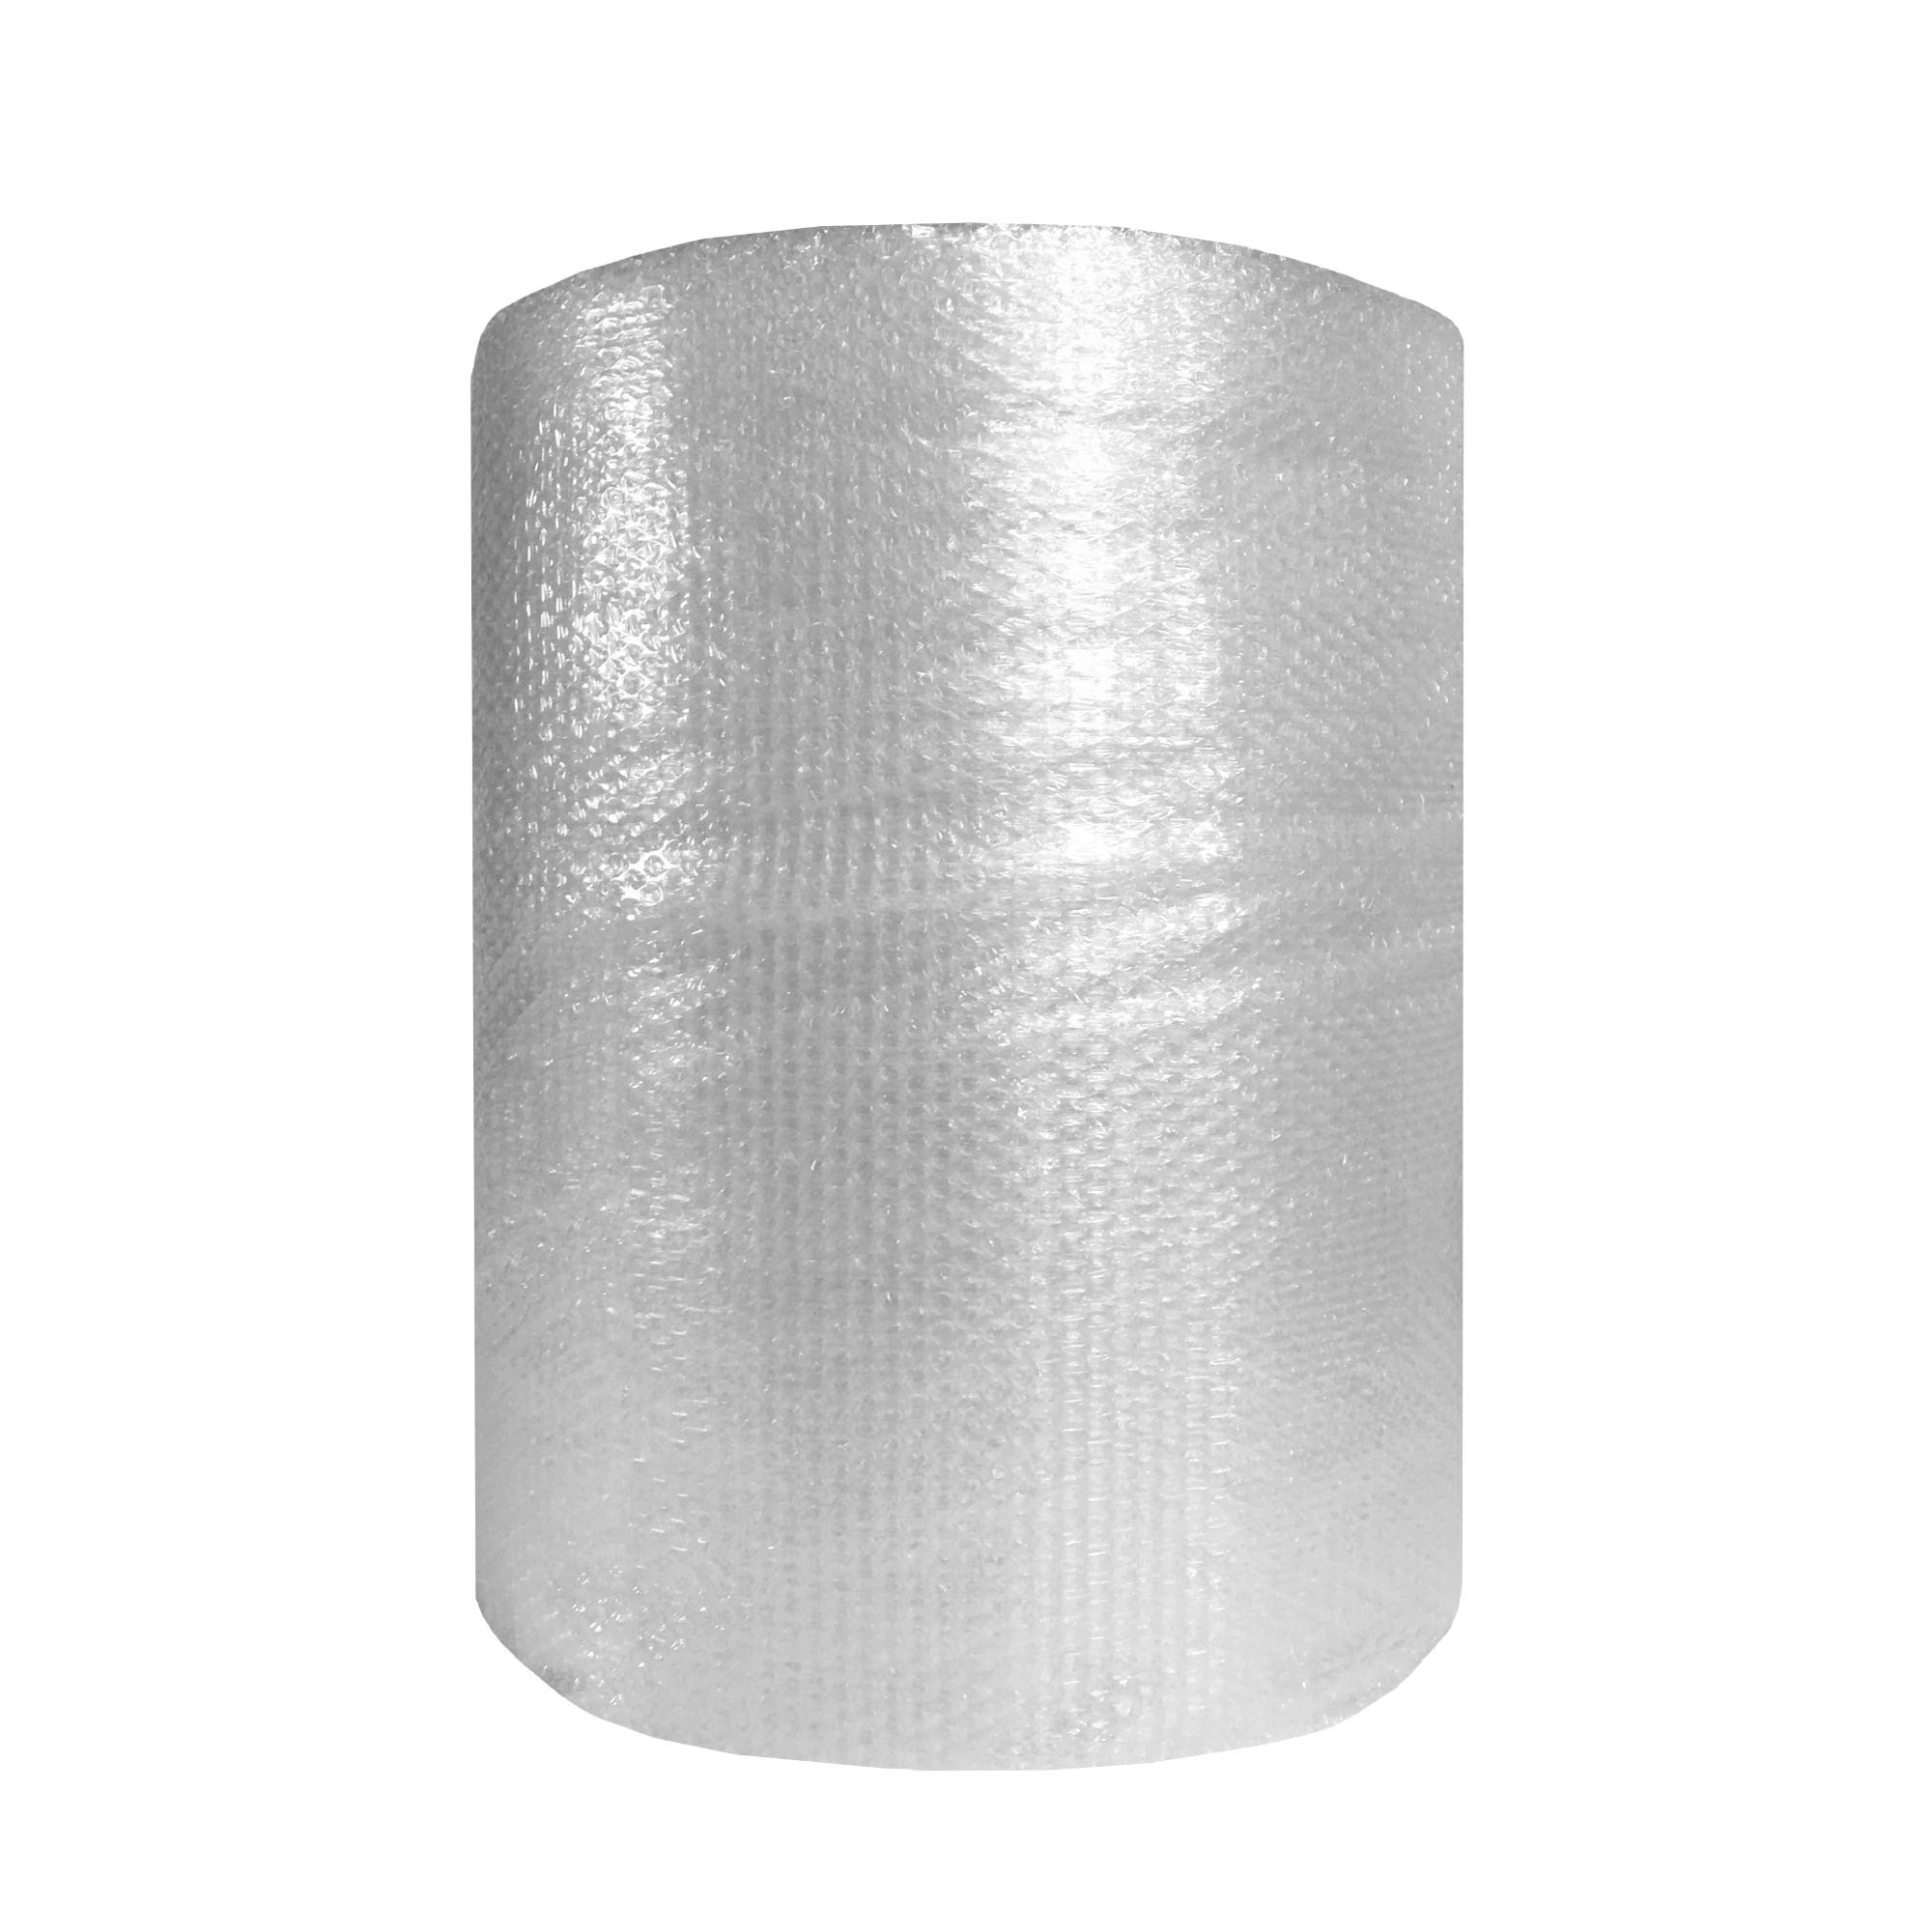 5//16 Thick 100 Length x 24 Width ValueMailers Medium Bubble Polyethylene Perforated Single Air Bubble Roll Clear VM51610024